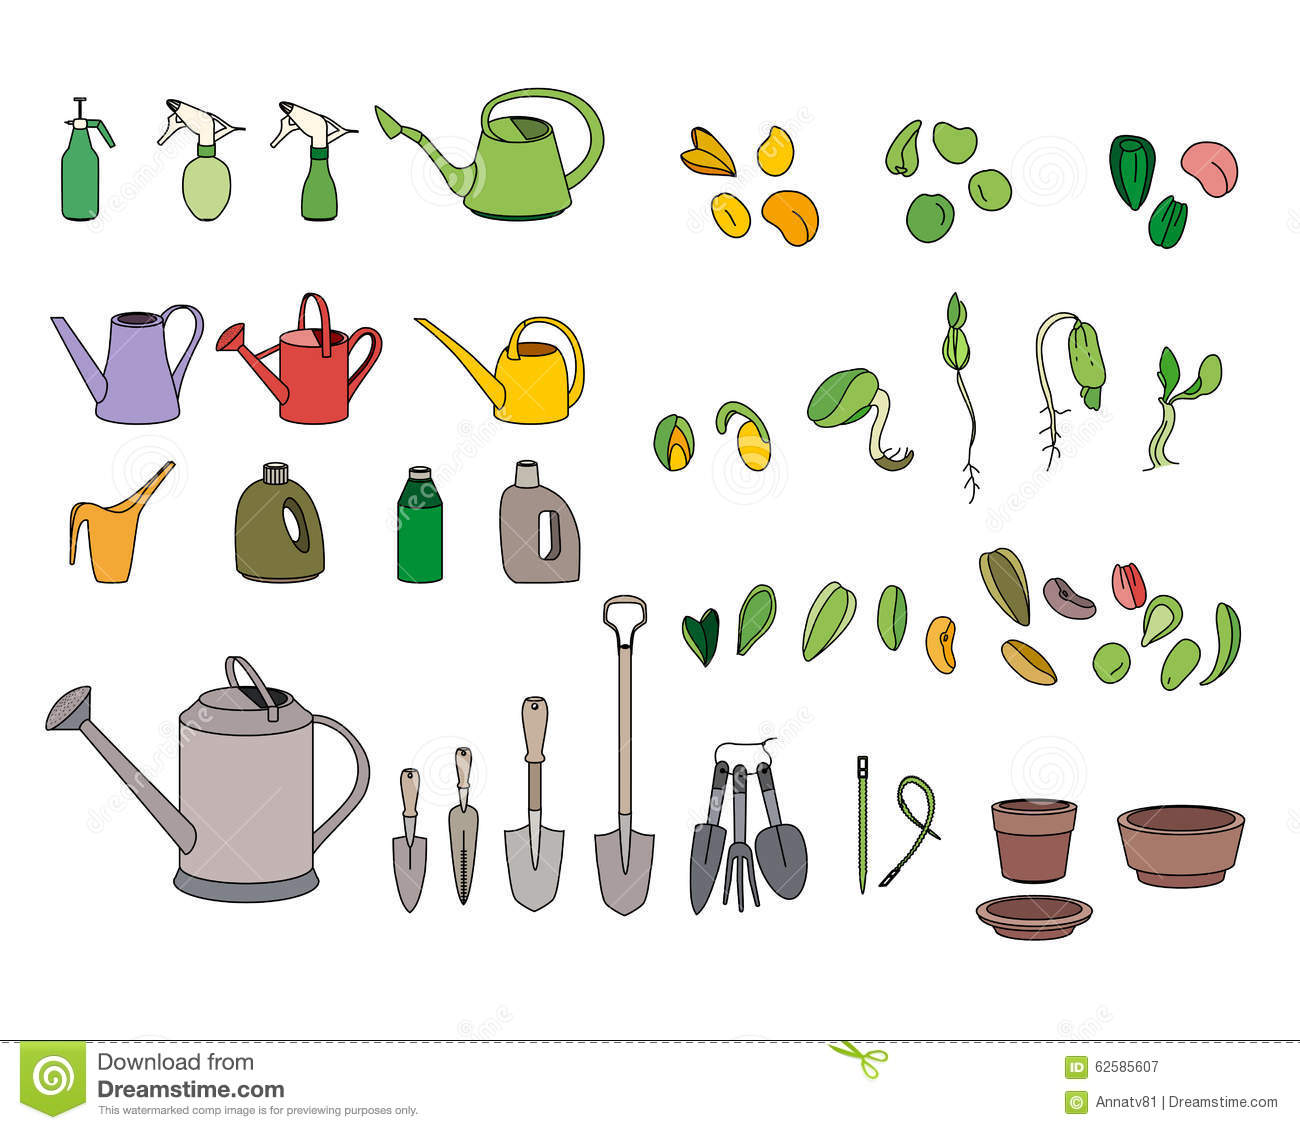 Garden tools and equipments for Tools and equipment in planting